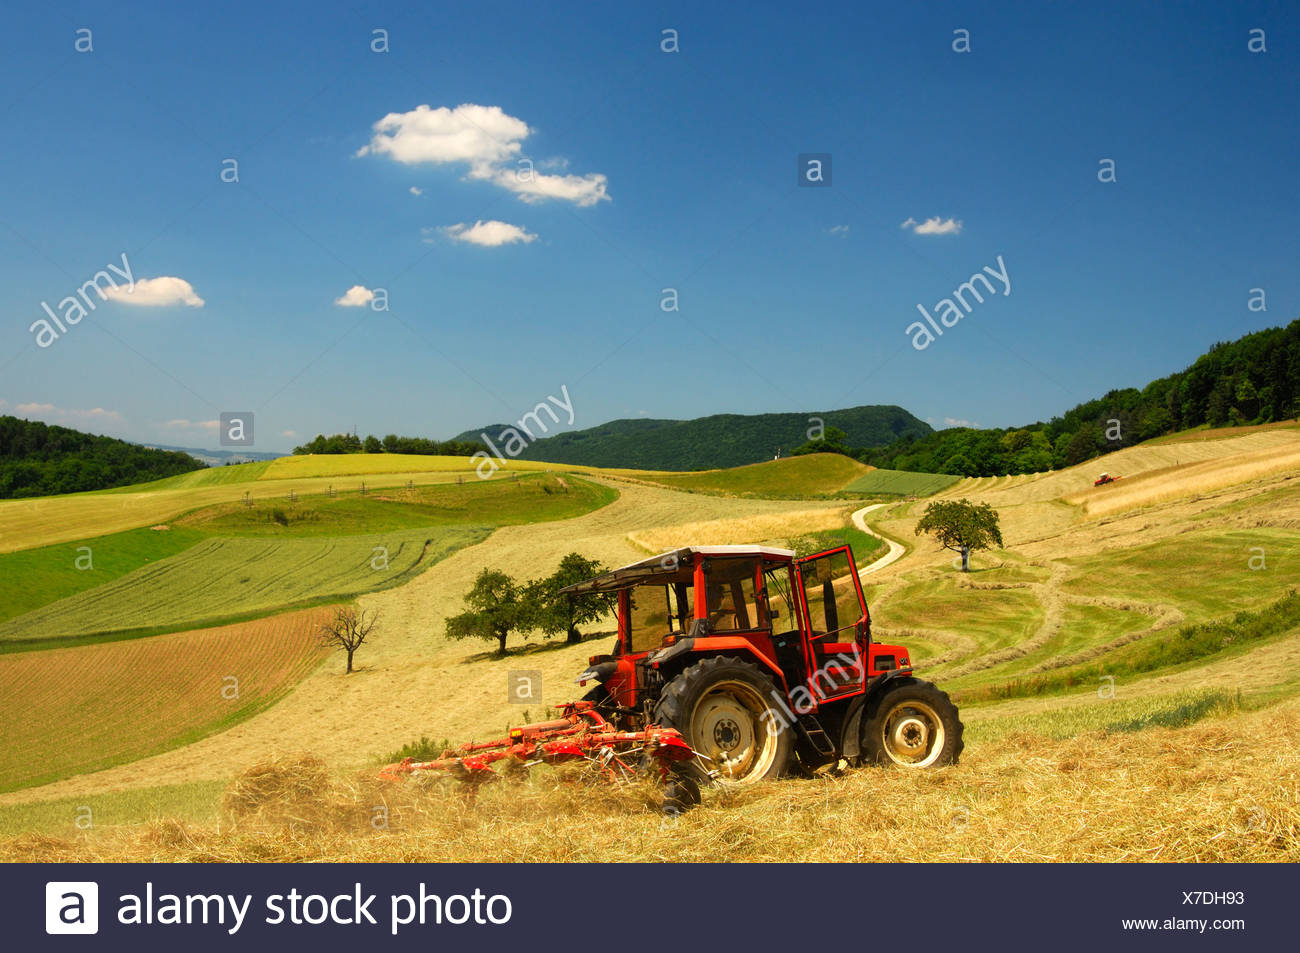 Tractor making hay on meadows in the Swiss Central Plateau, canton of Aargau, Switzerland, Europe - Stock Image